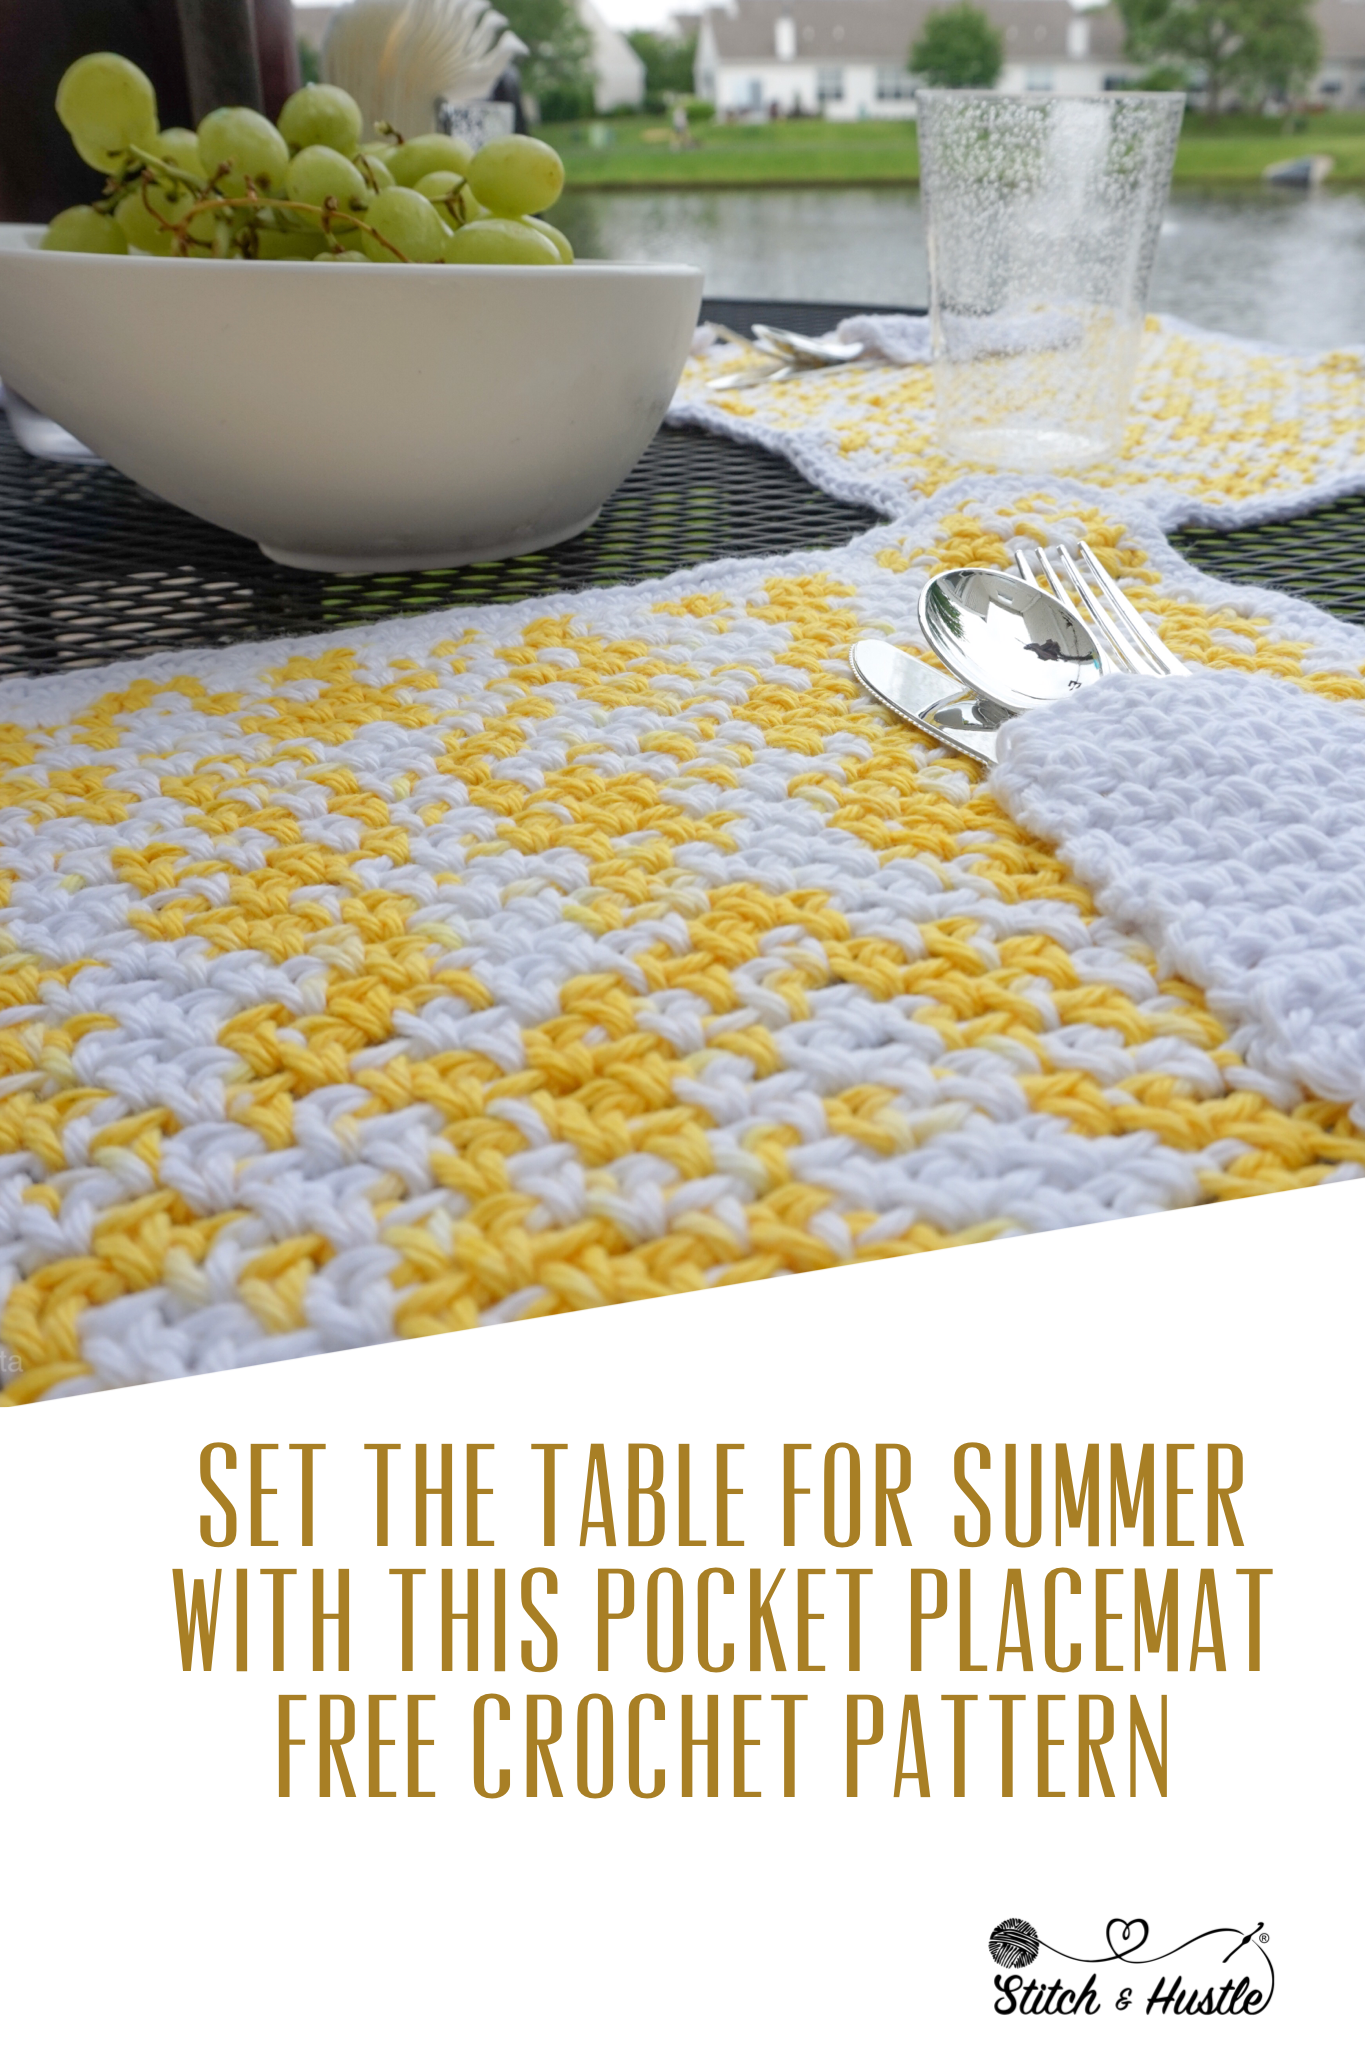 Pocket-placemat-Free-crochet-pattern--5.png